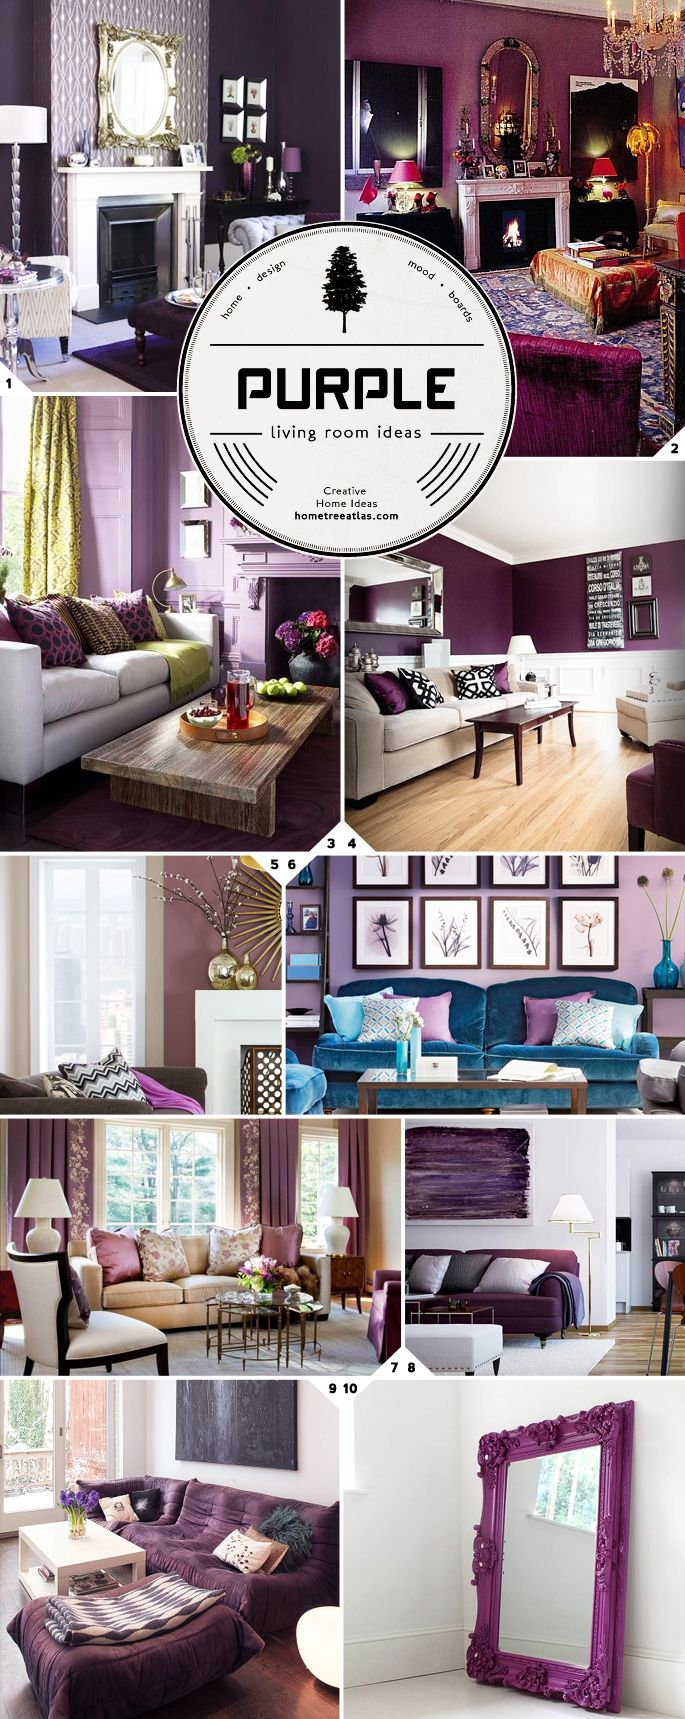 Purple Living Room Design Ideas.